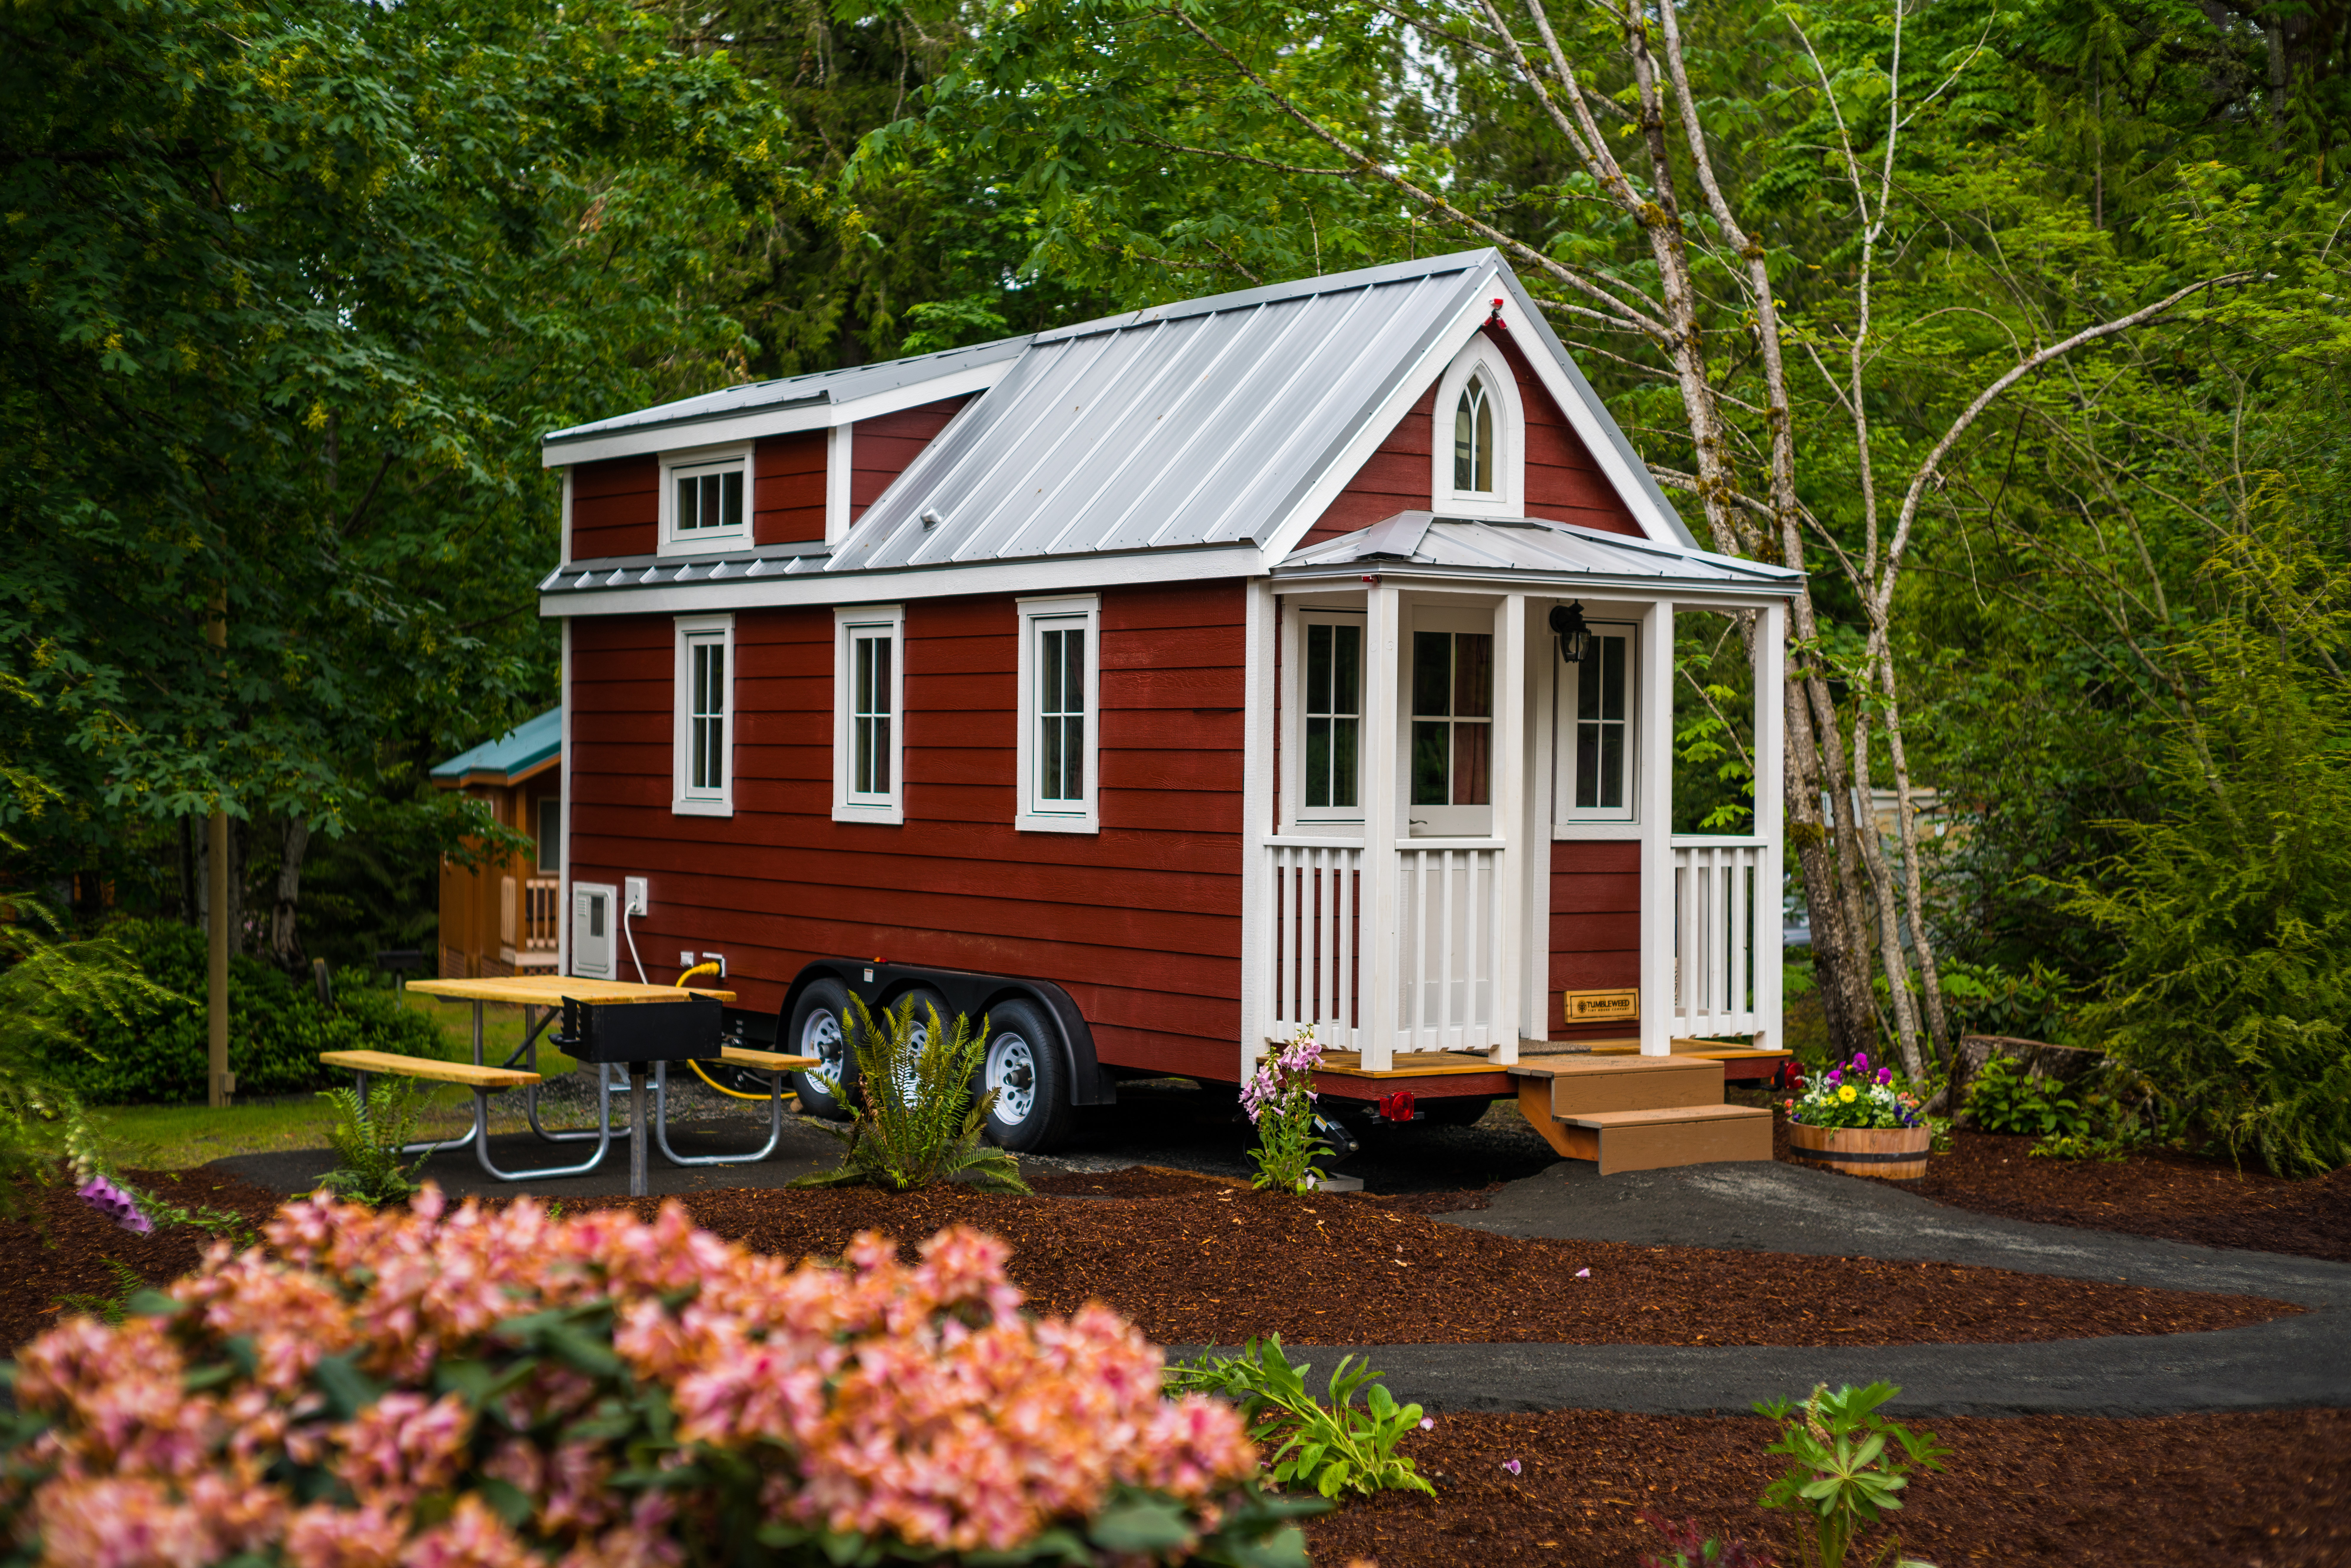 Oregon tiny house bill moves closer to reality, but not without opposition